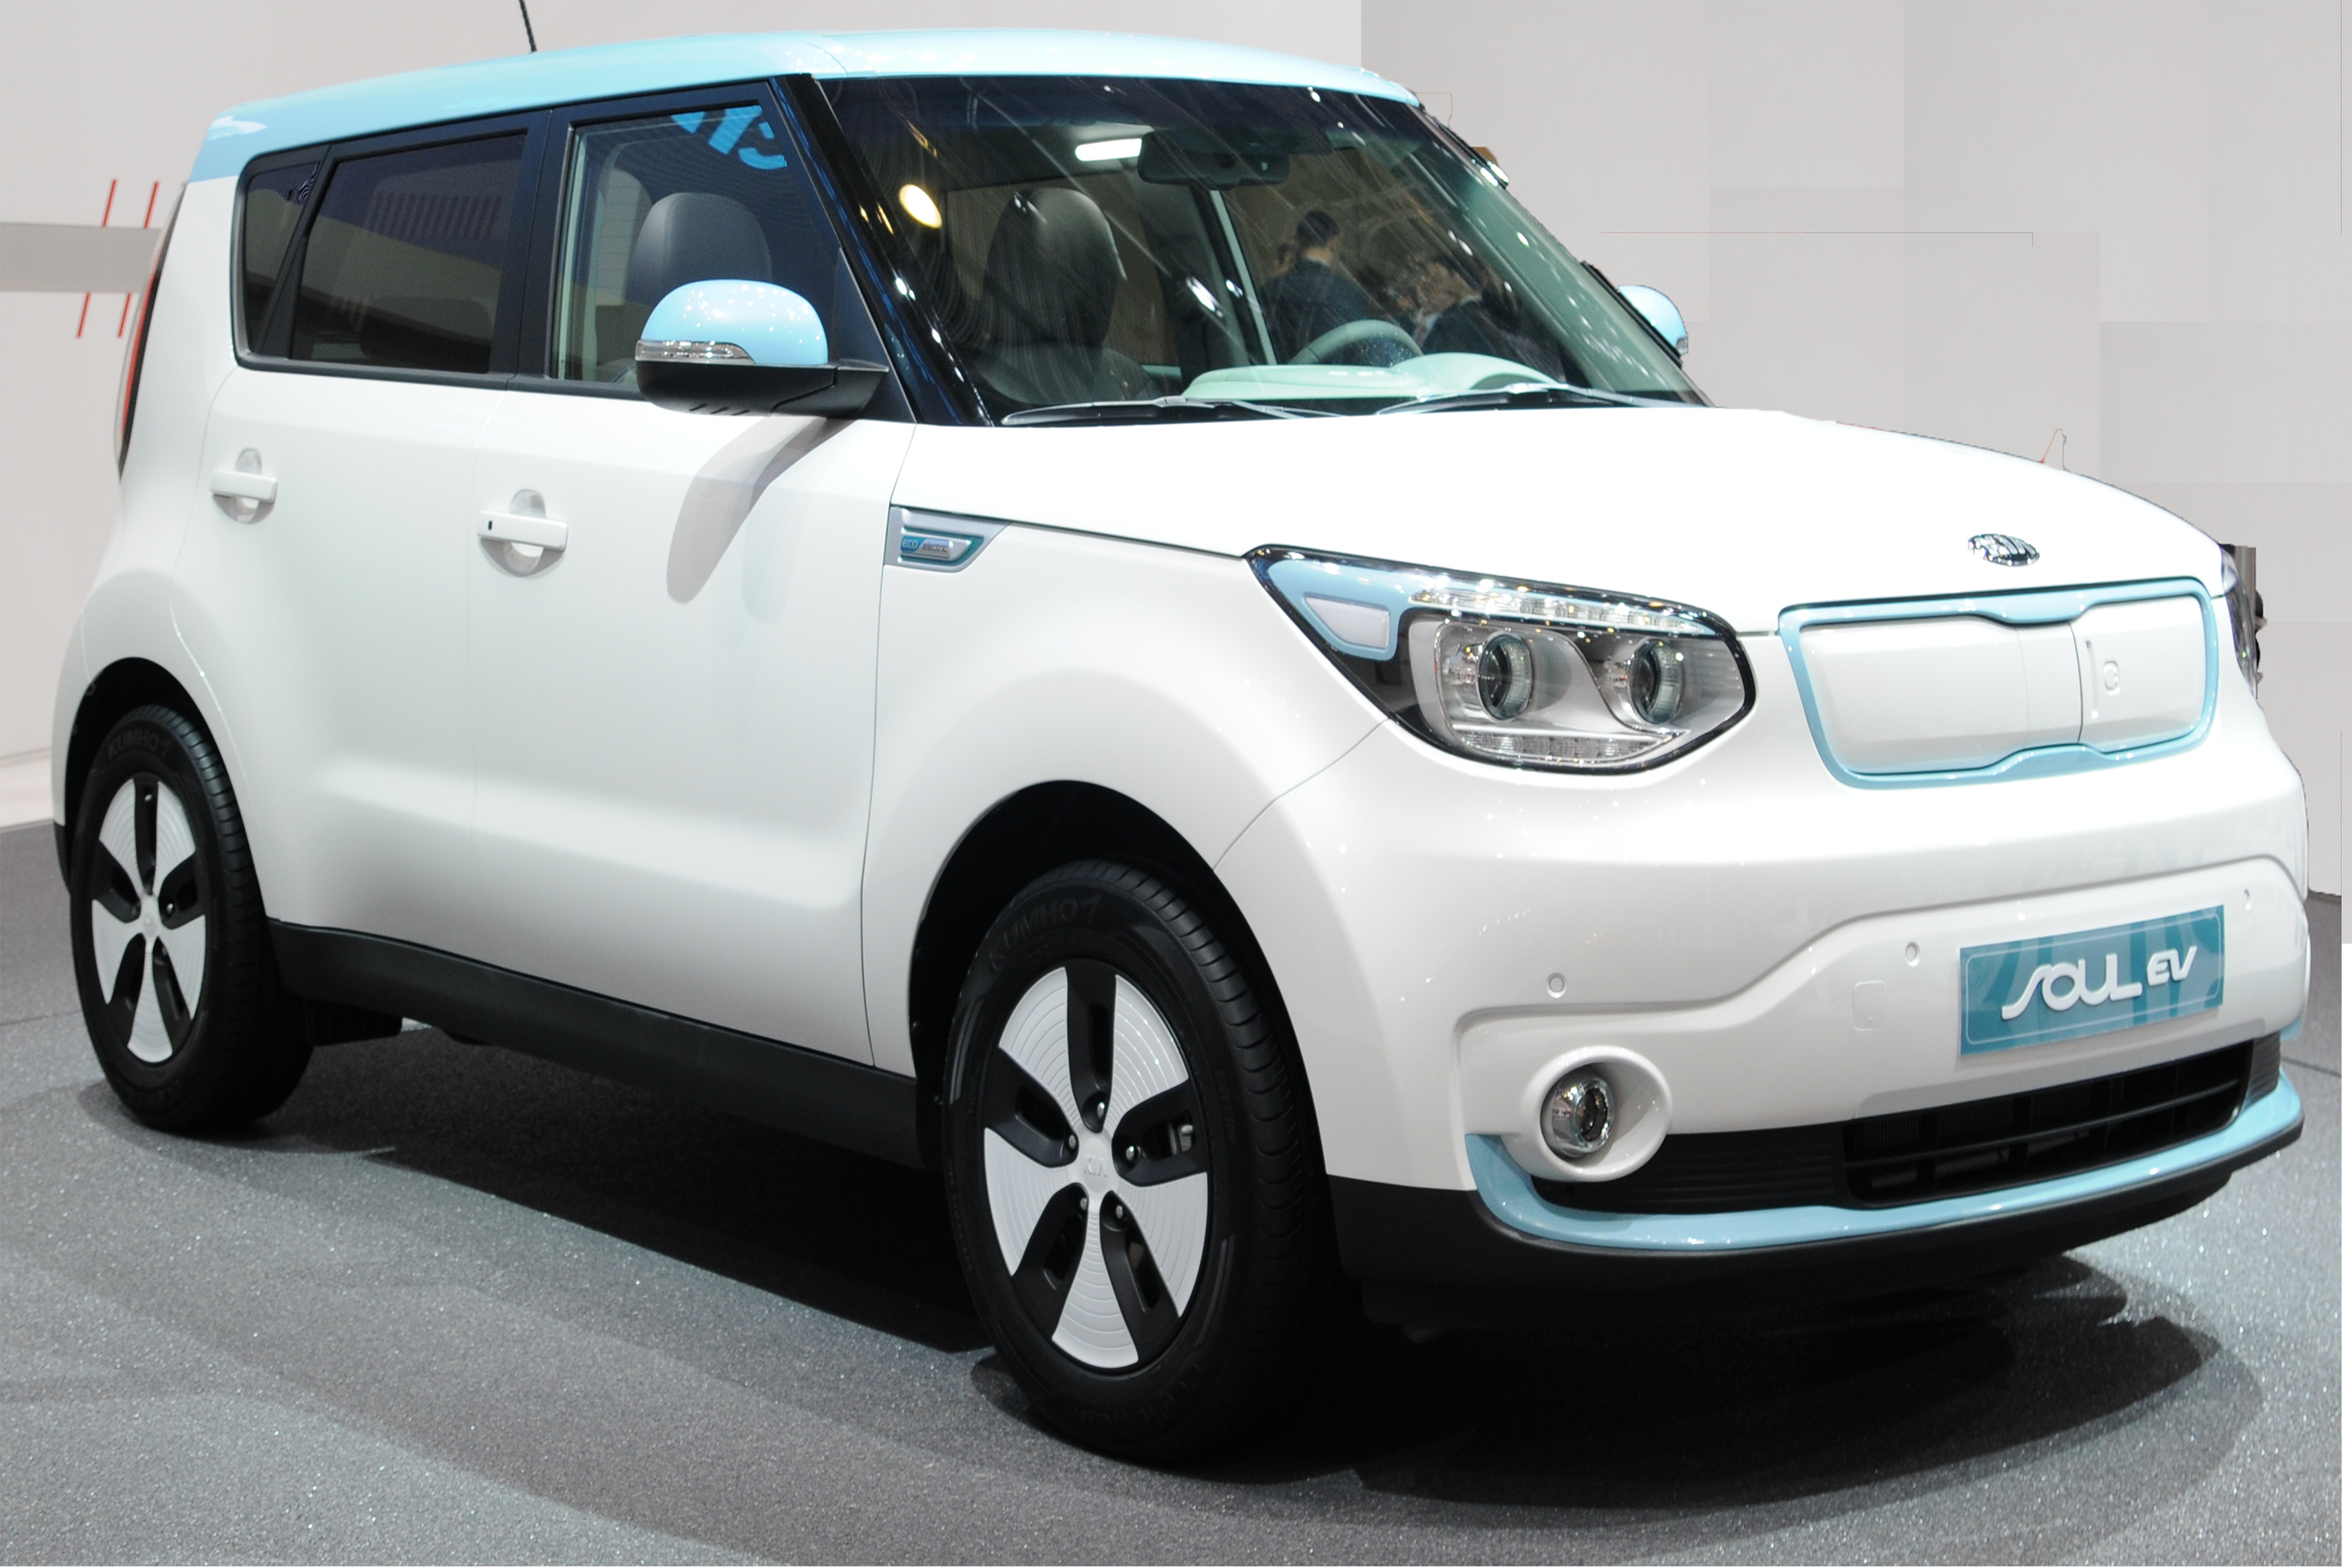 kia soul ev play mit p1 komfort paket ludego. Black Bedroom Furniture Sets. Home Design Ideas